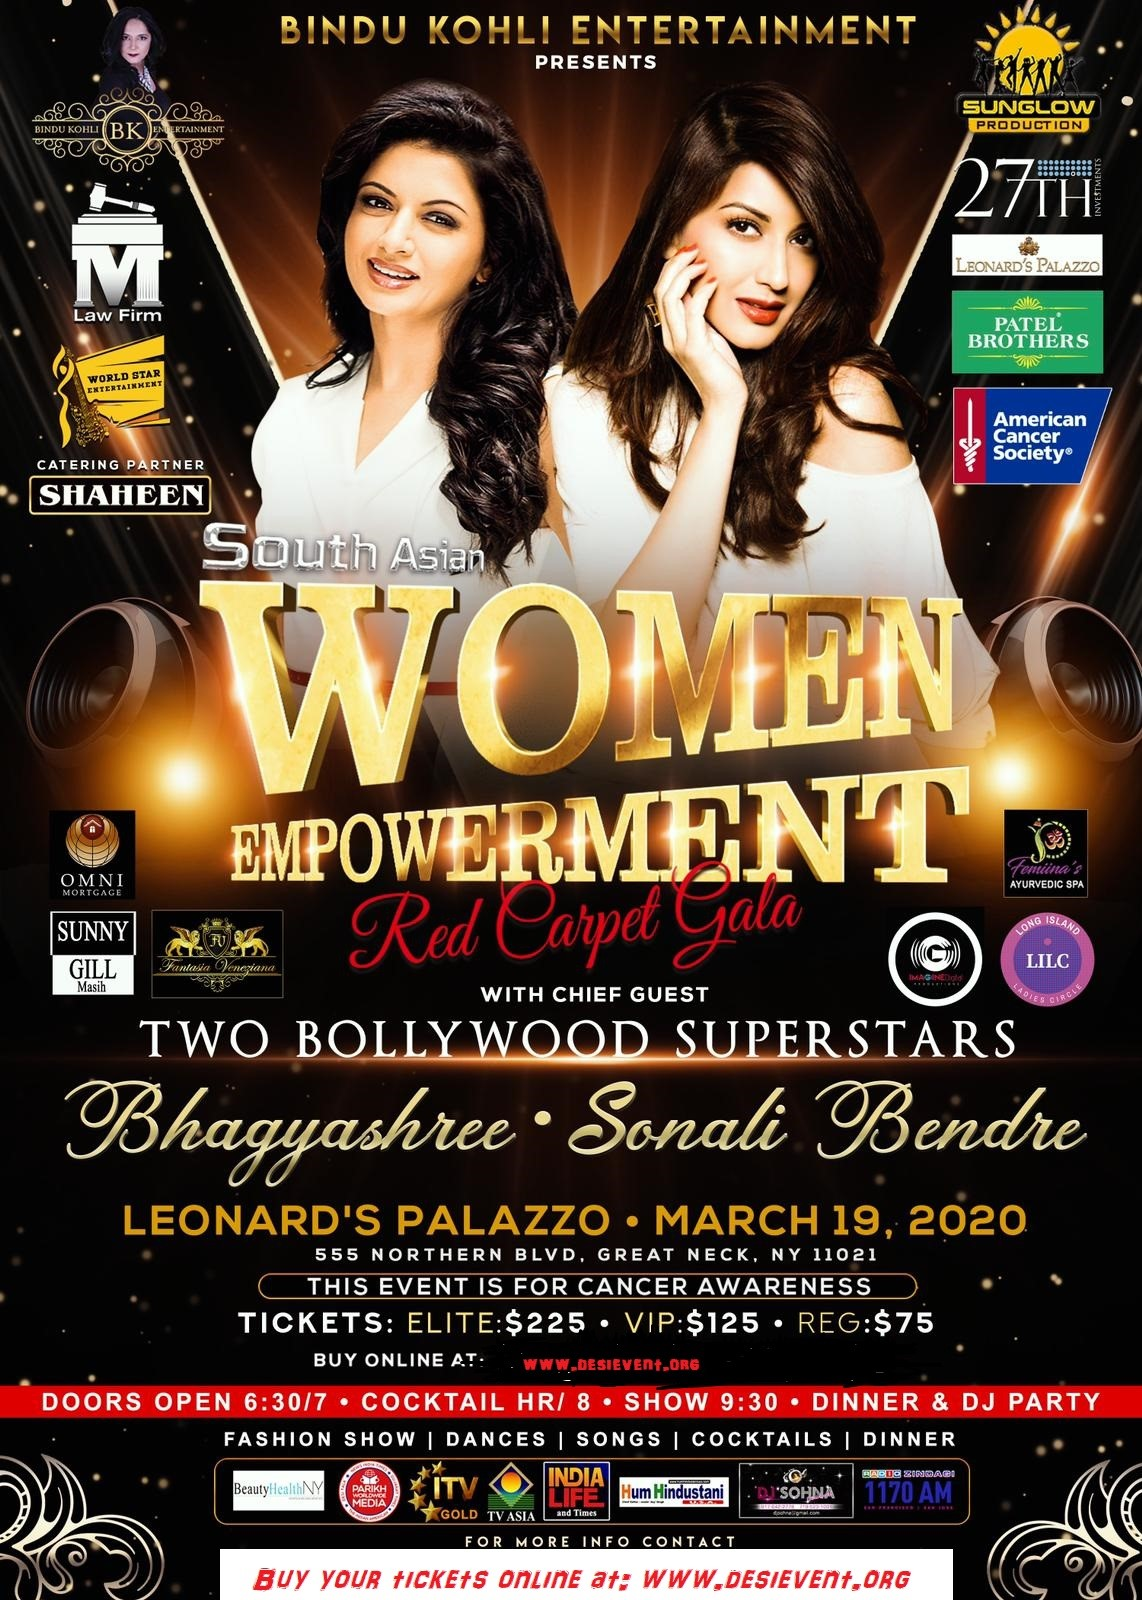 First Time In USA Two Amazing Bollywood Actresses Sonali Bendre and Bhagyashree At New York March 19th on Mar 19, 20:00@Leonard's Palazzo - Buy tickets and Get information on DesiEvents desievent.org